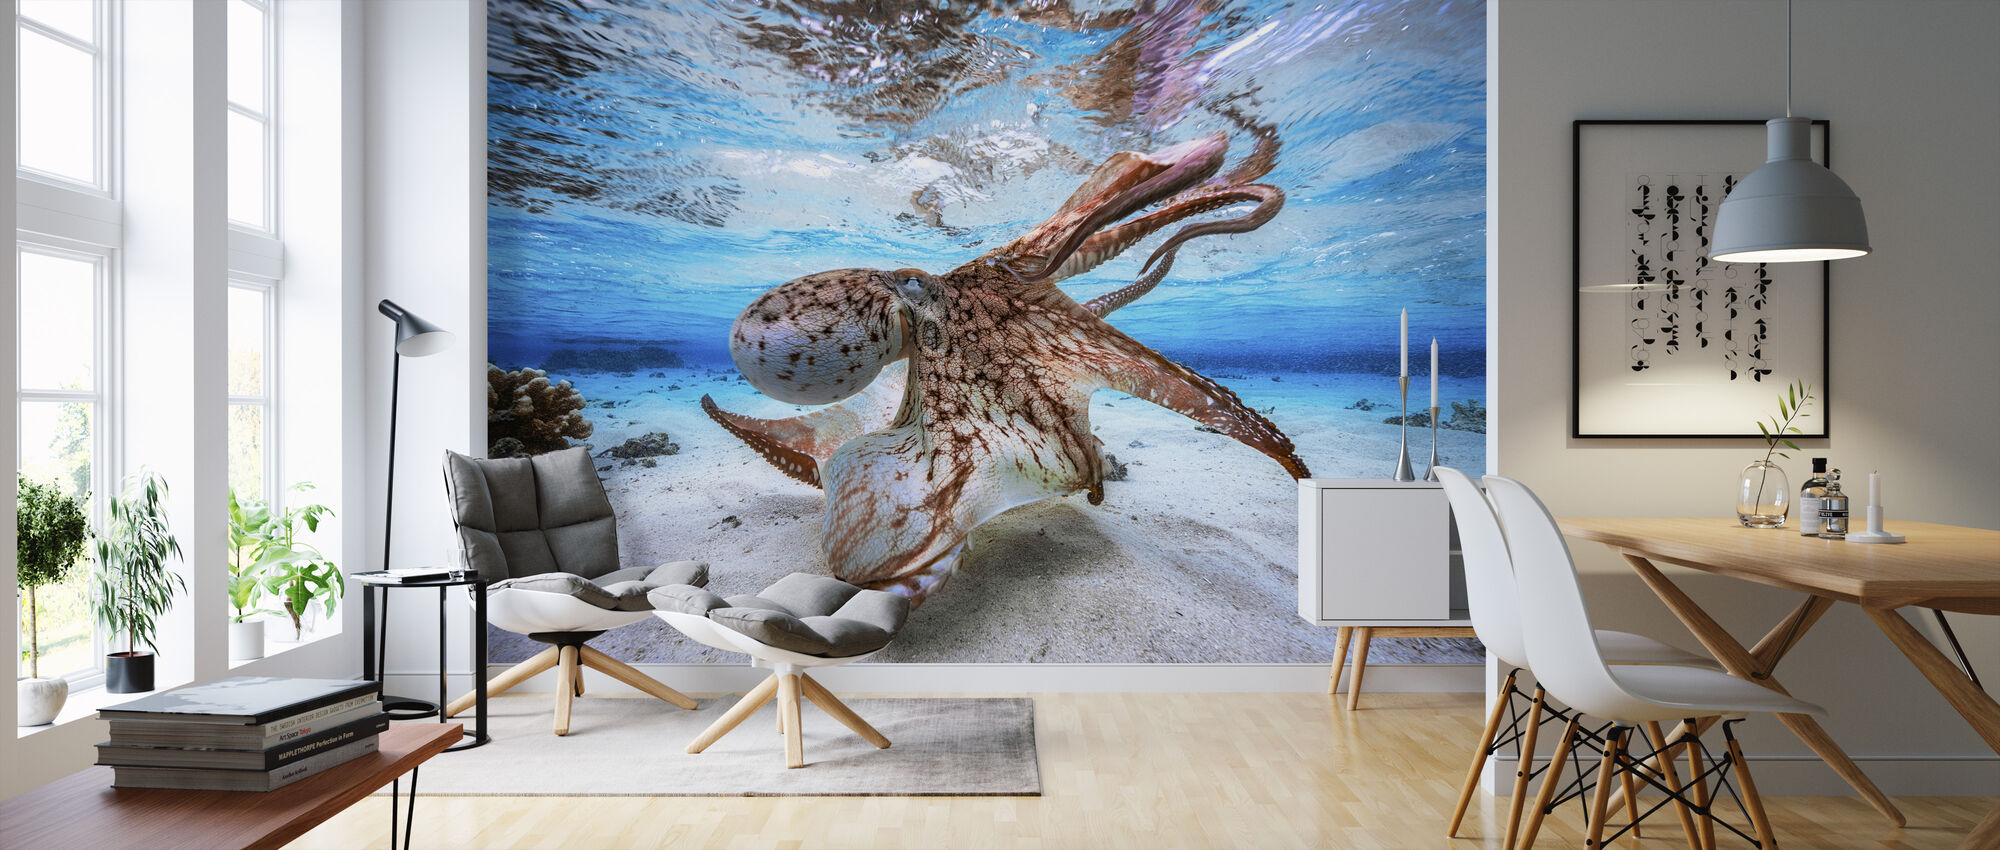 Dancing Octopus - Wallpaper - Living Room